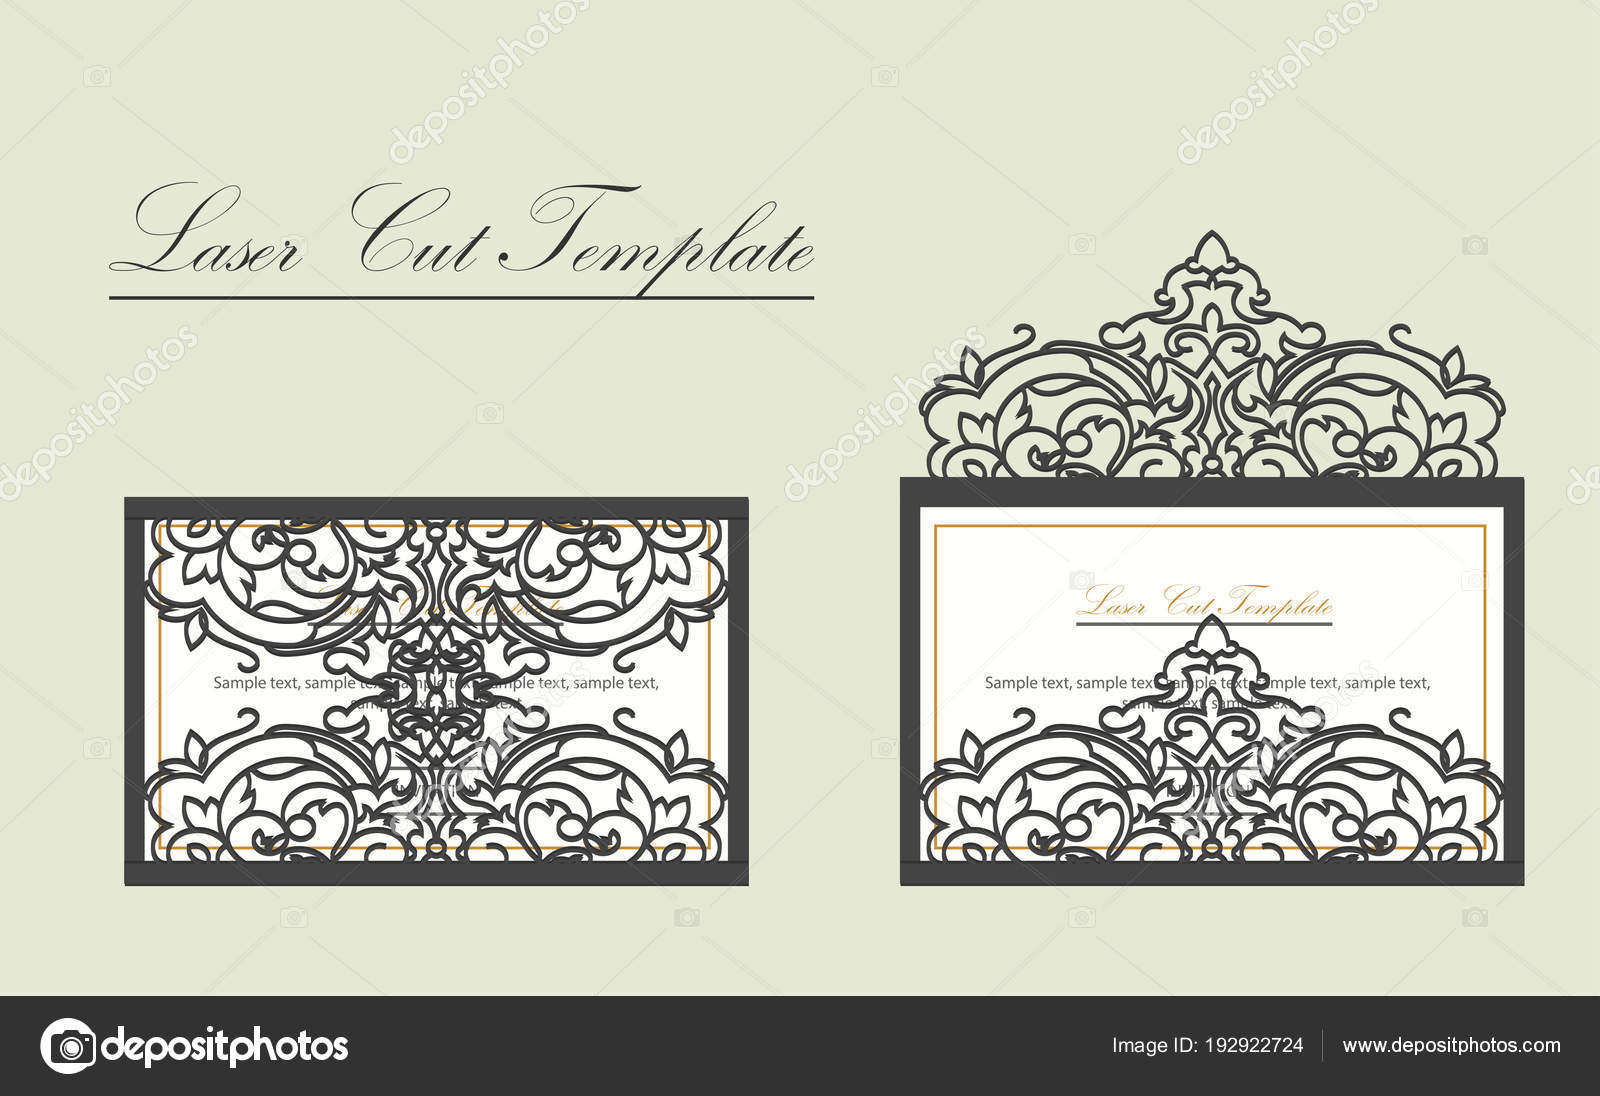 Digital Vector File For Laser Cutting The Envelope Is An